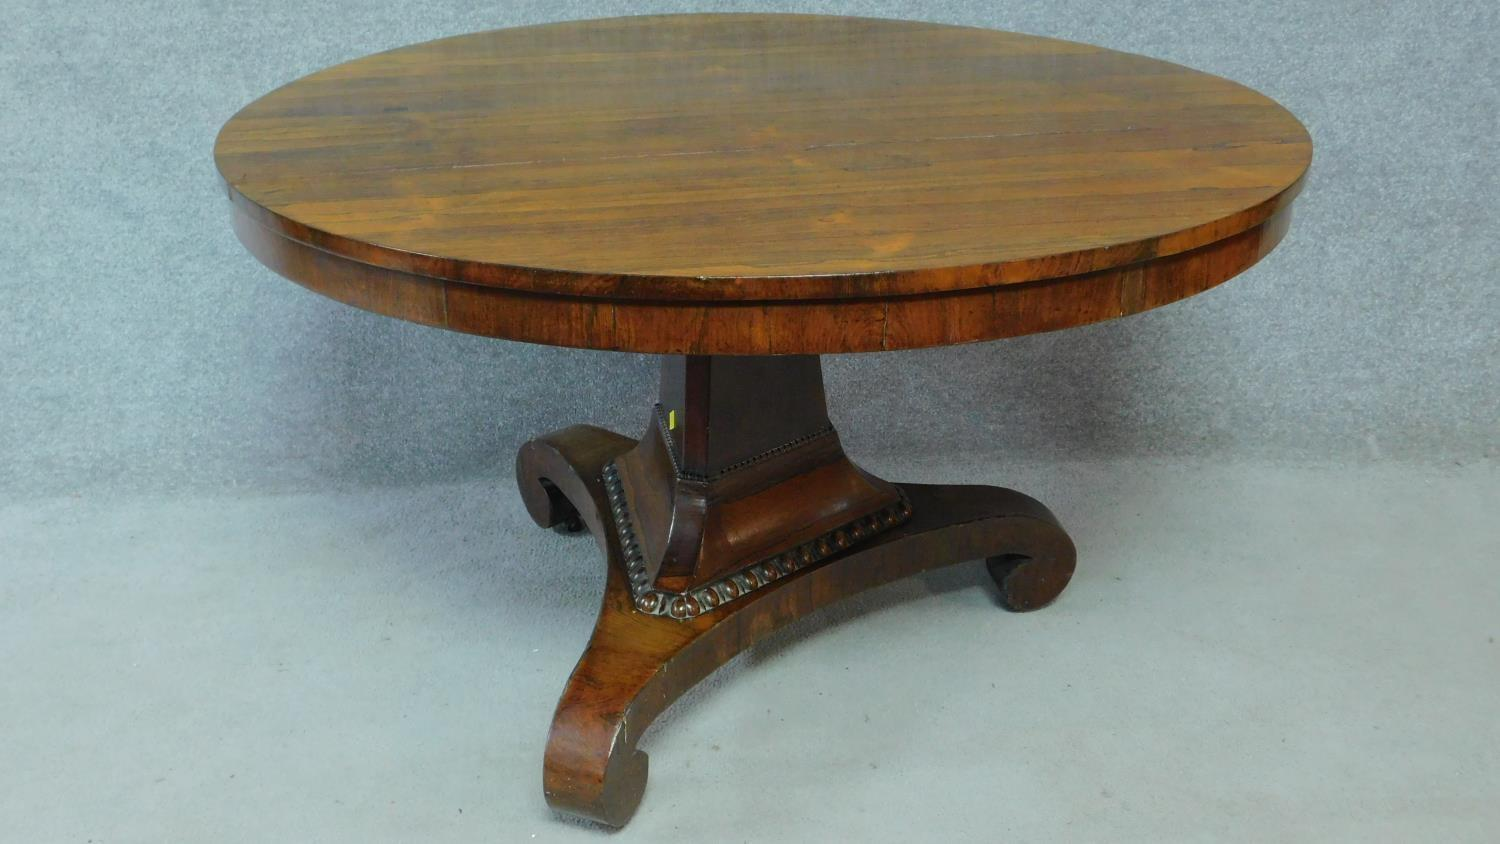 A Regency rosewood circular tilt top loo table on pedestal tripod base. H.73 L.123 W.123cm